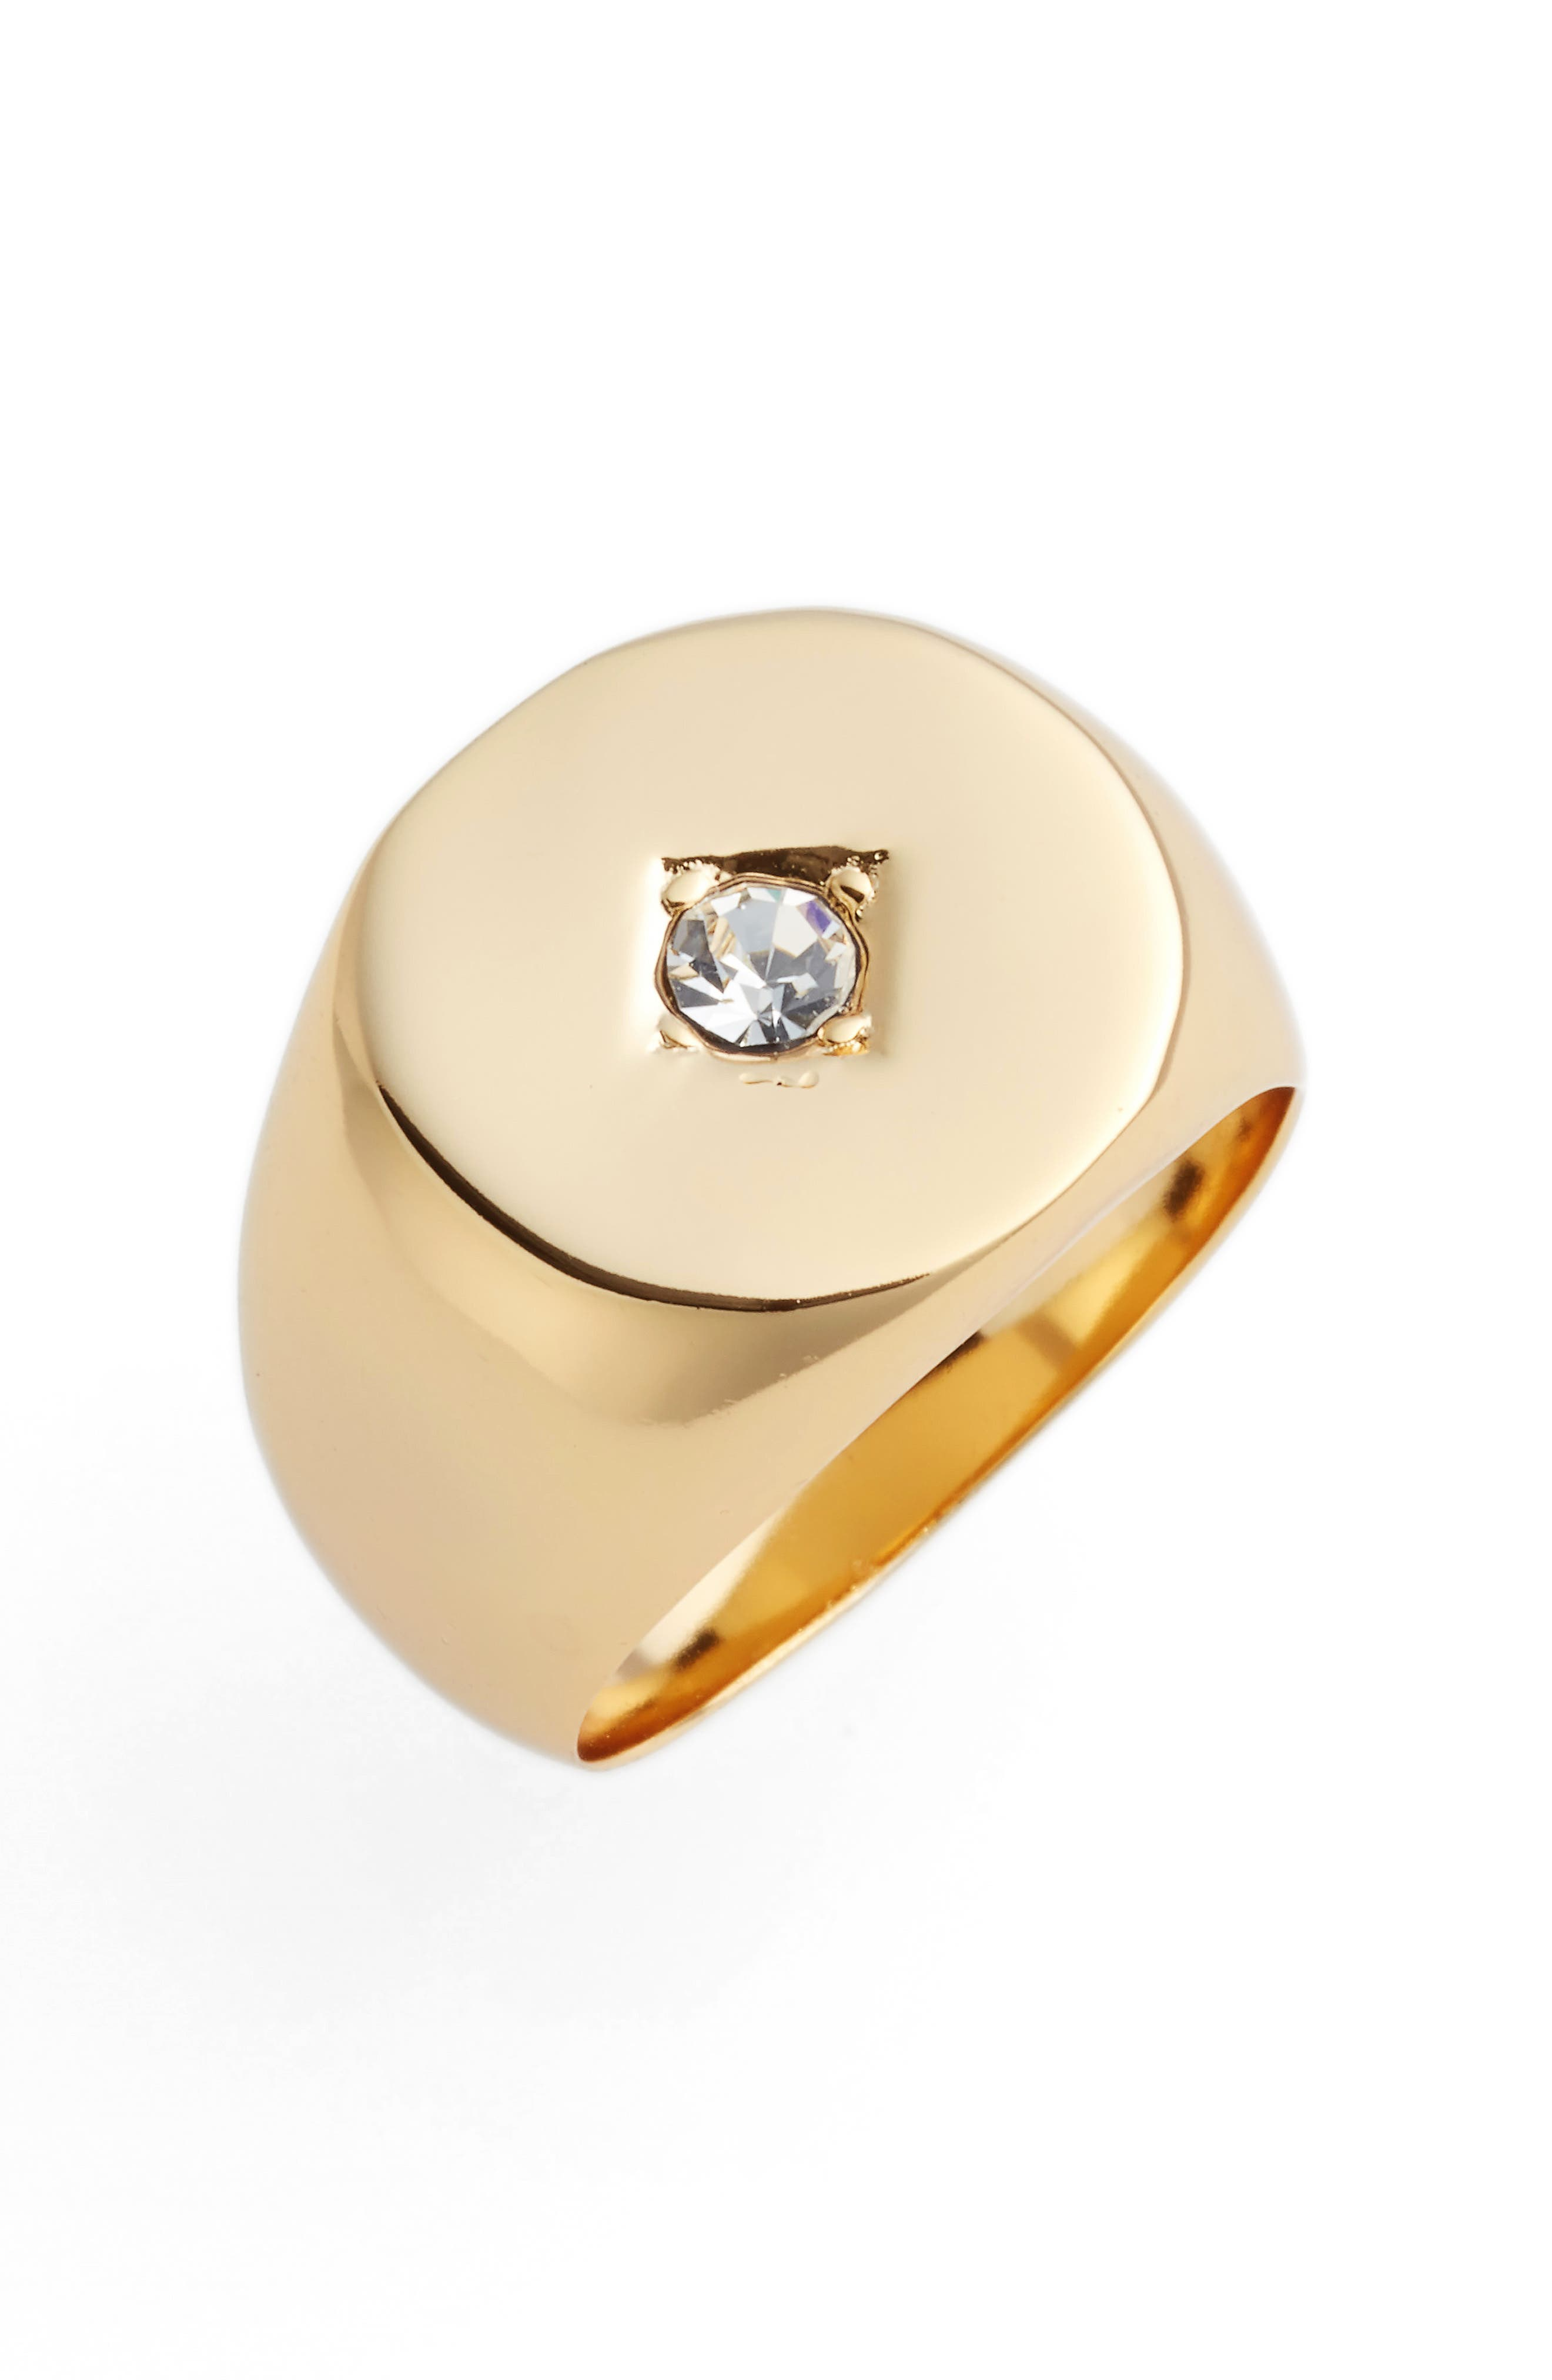 Jules Smith Tulum Signet Ring